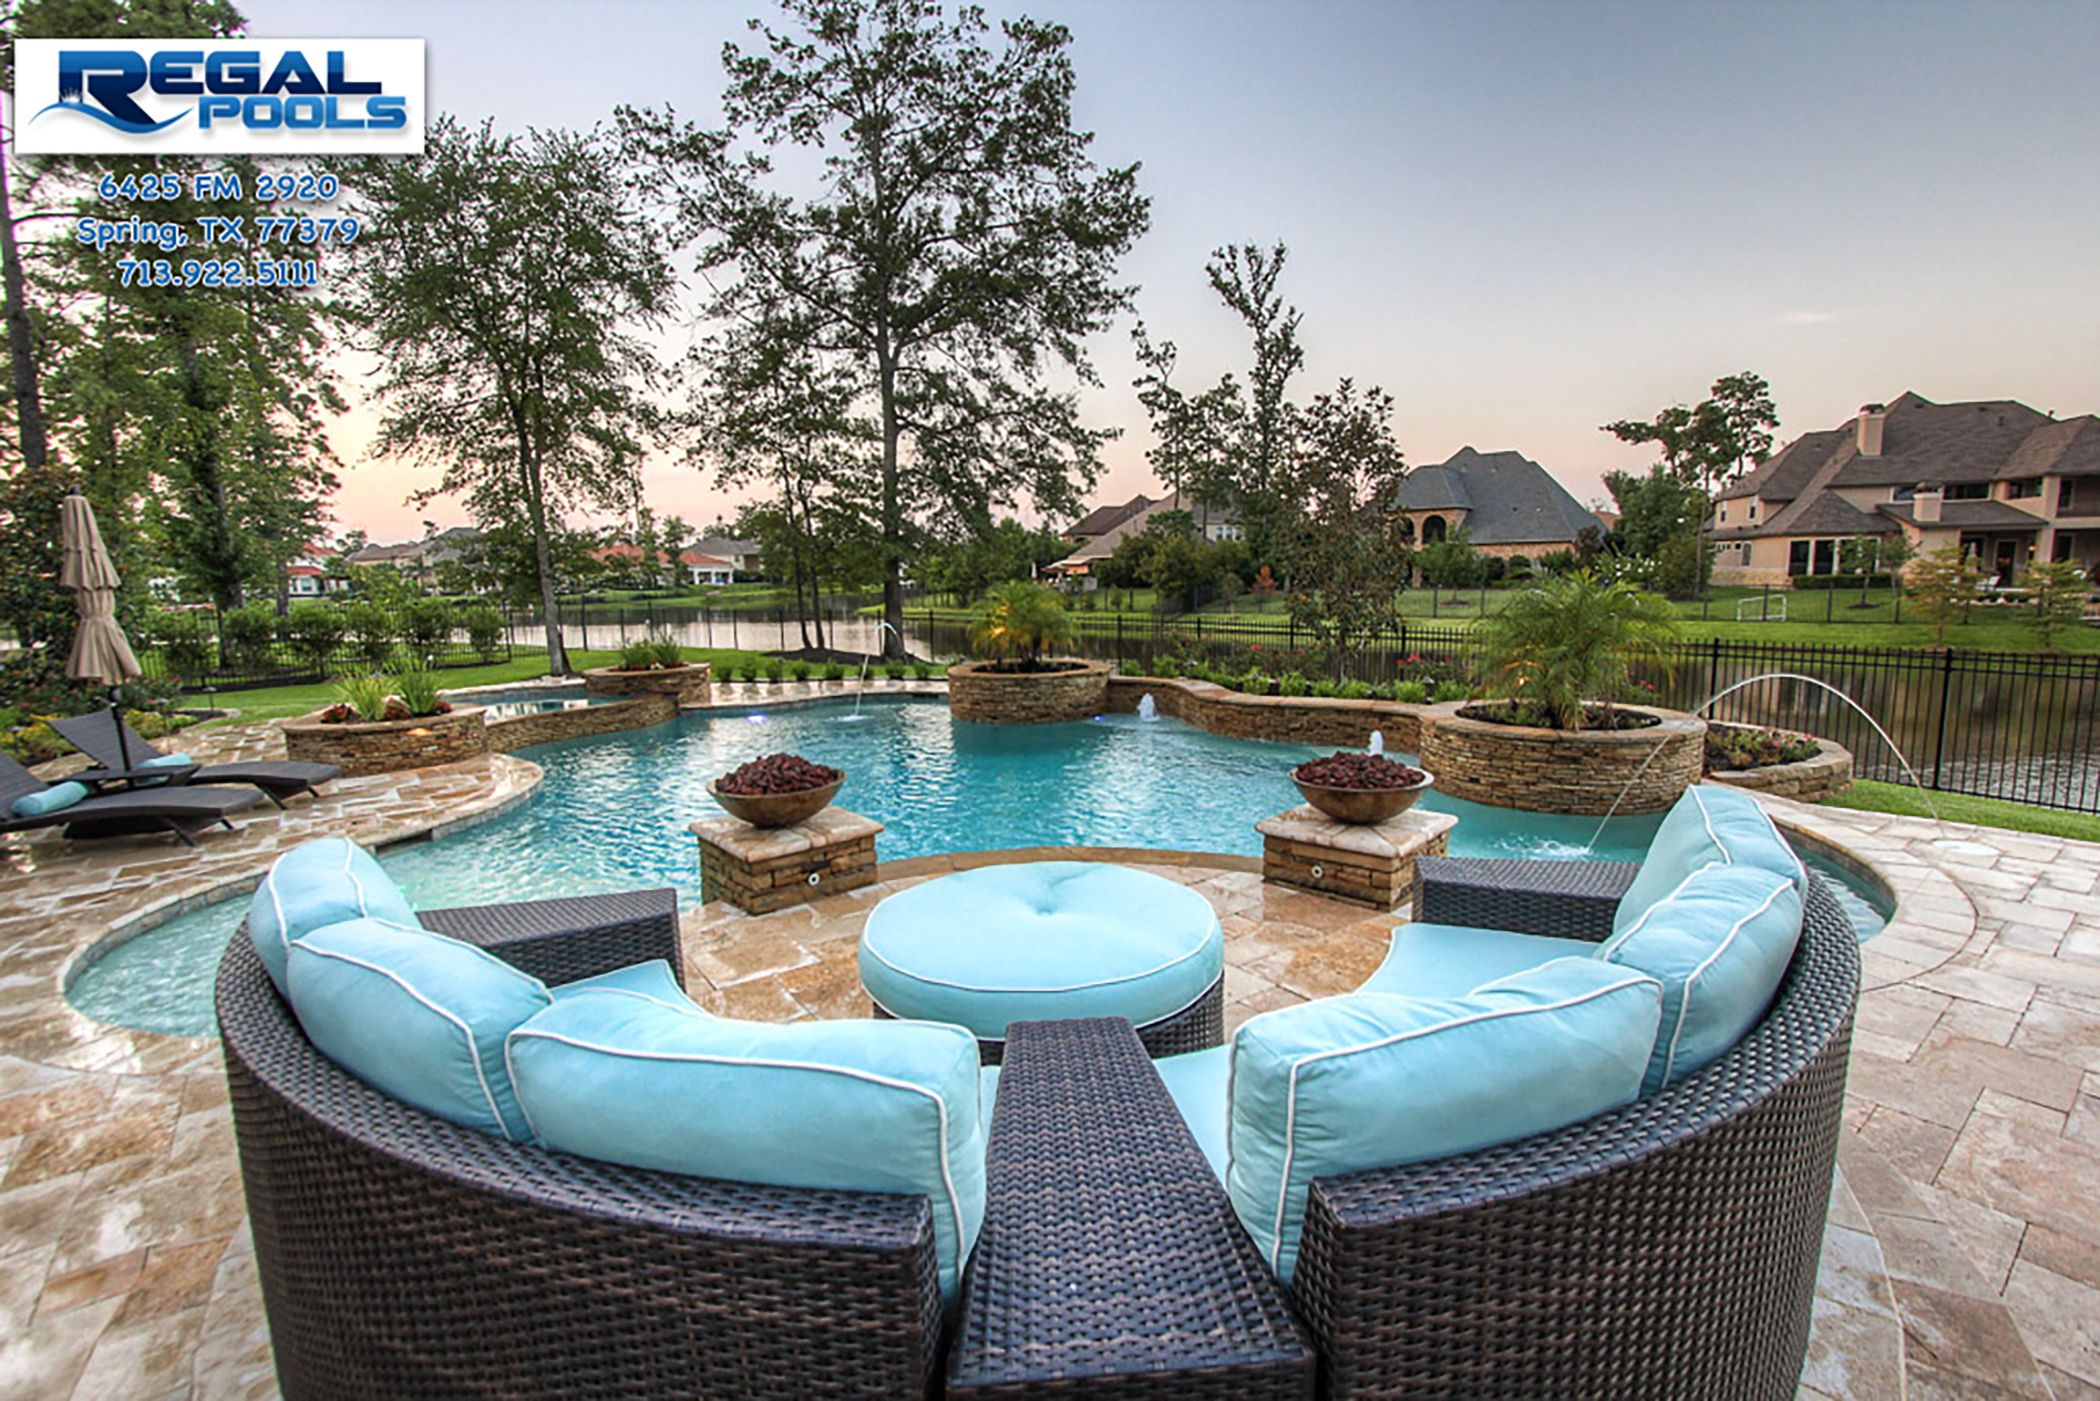 Build Your Dream Pool With Morehead Pools Pool Design &